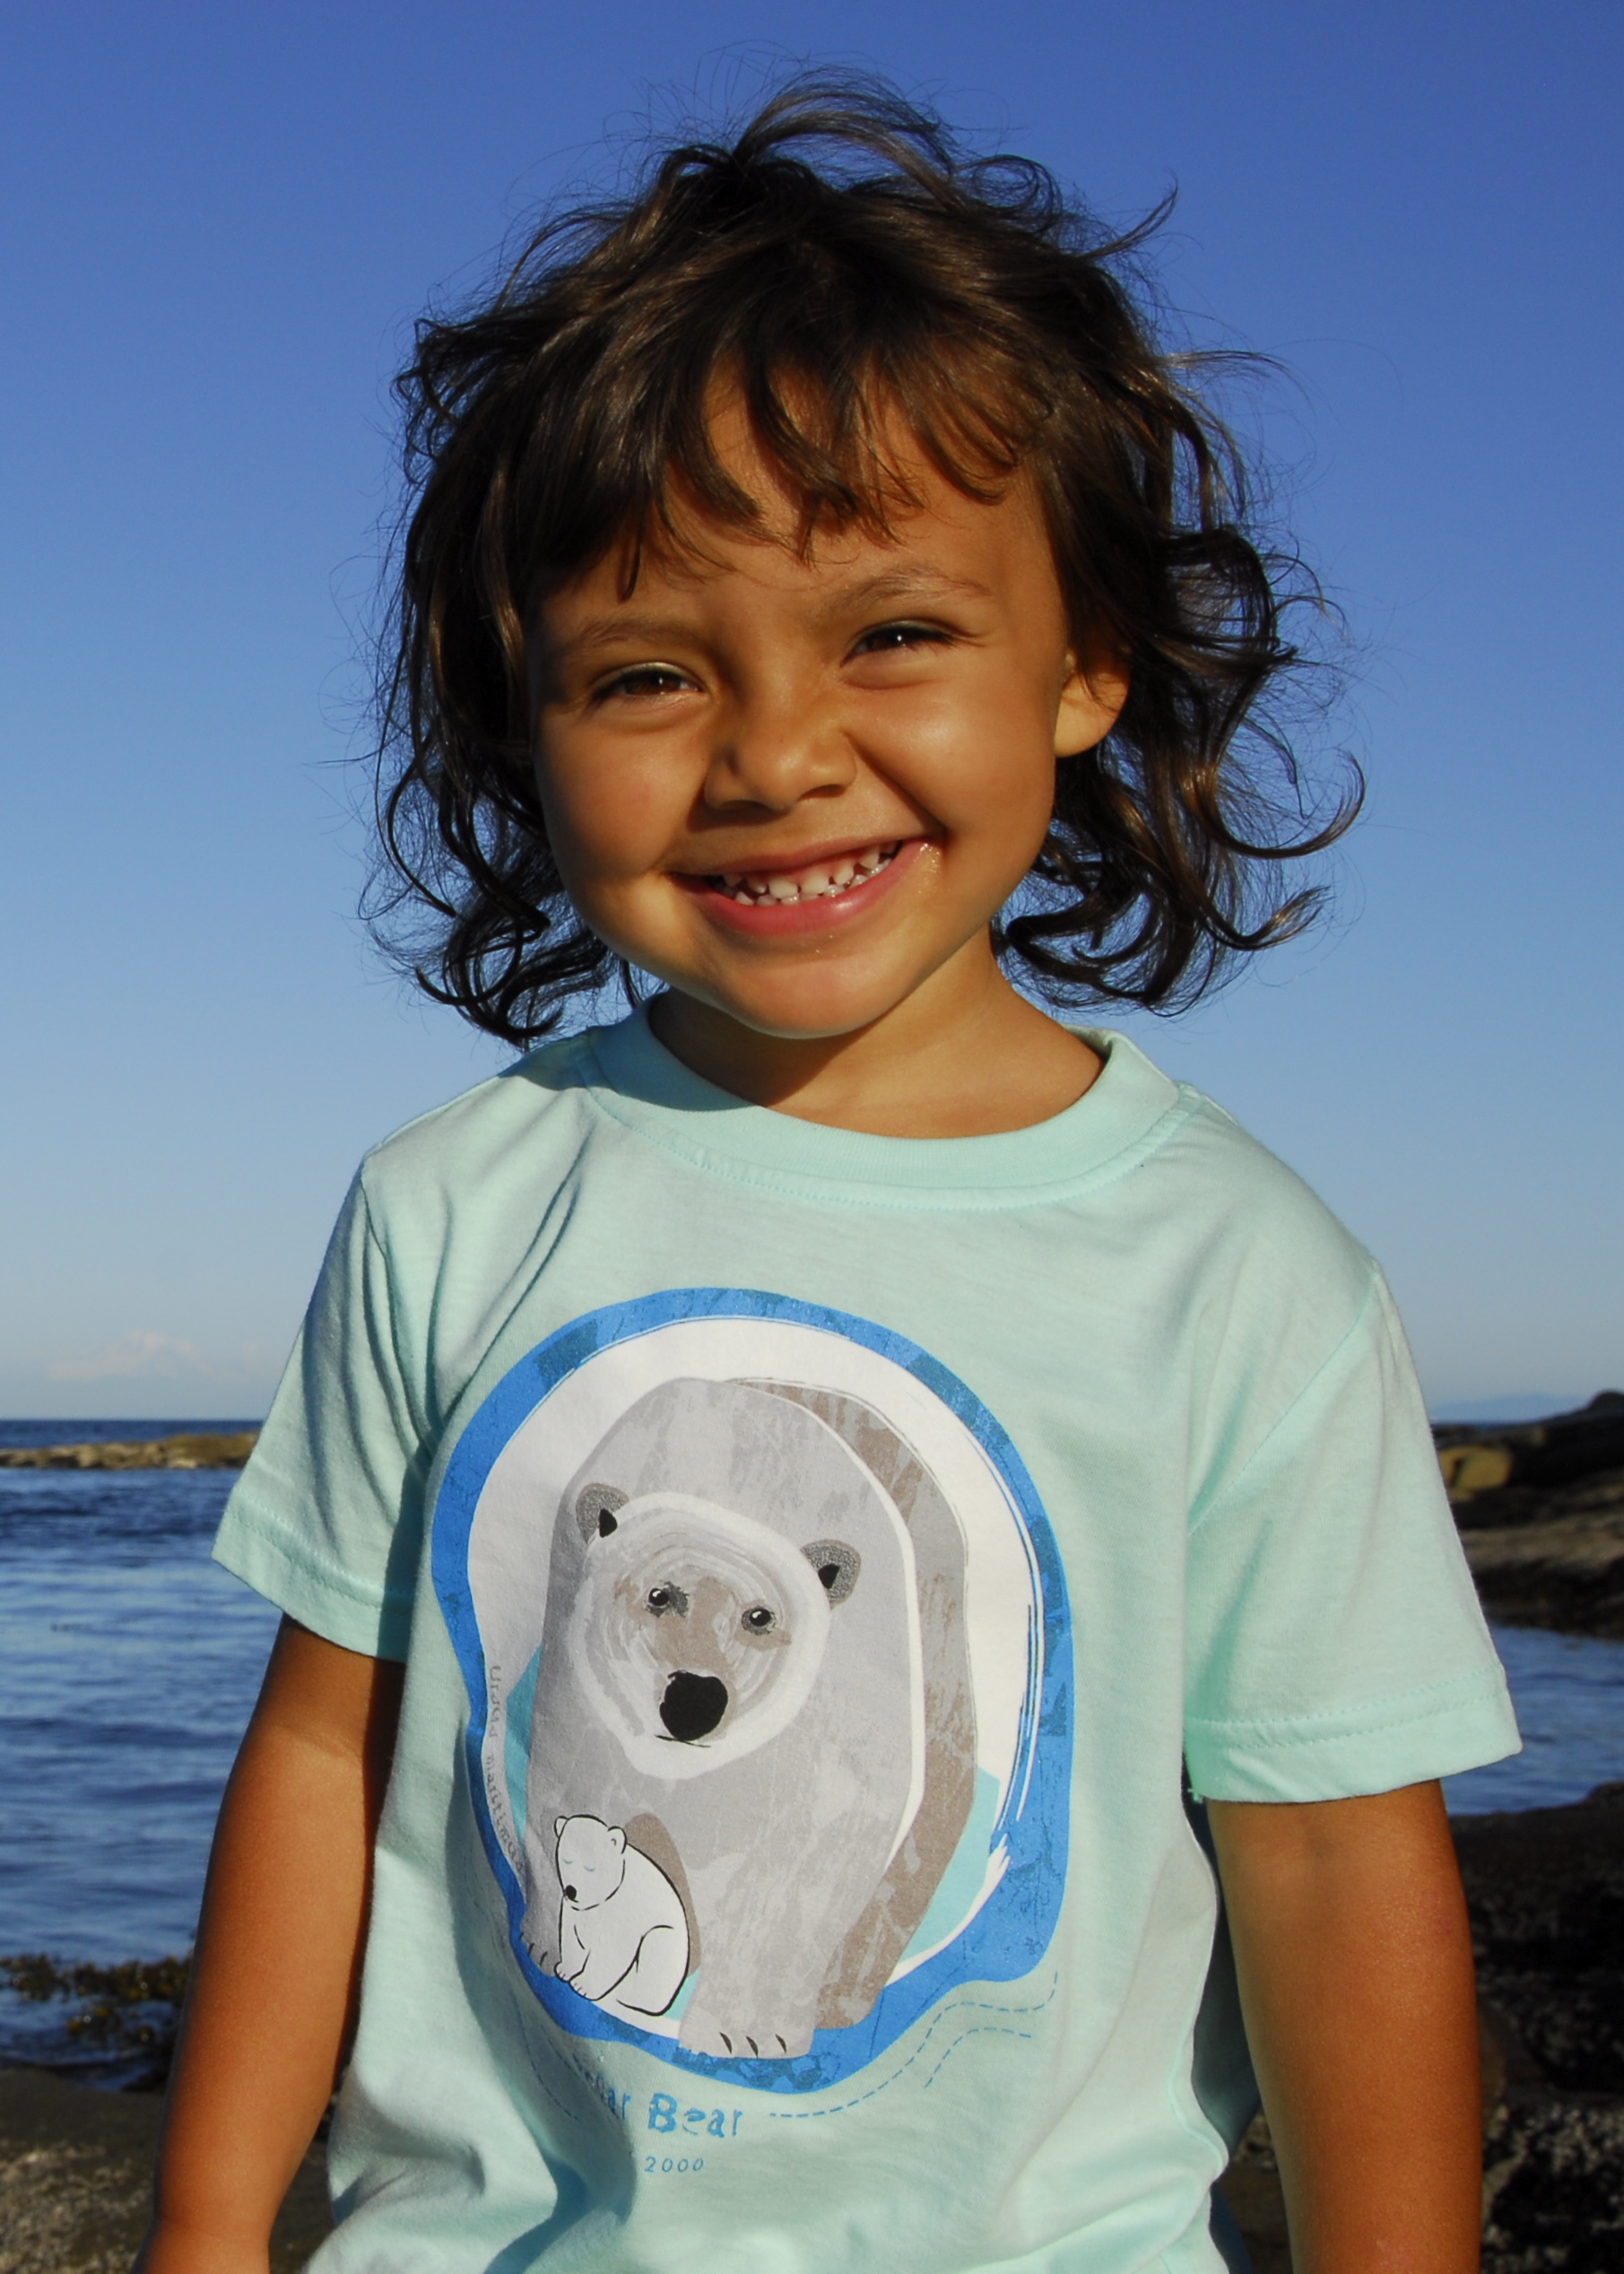 $1 for One.  Support the extraordinary work of  Polar Bears International  by purchasing a SpeeZees Polar Bear t-shirt in  Ocean  or  Danish Blue . Made from  100% GOTS certified organic cotton .